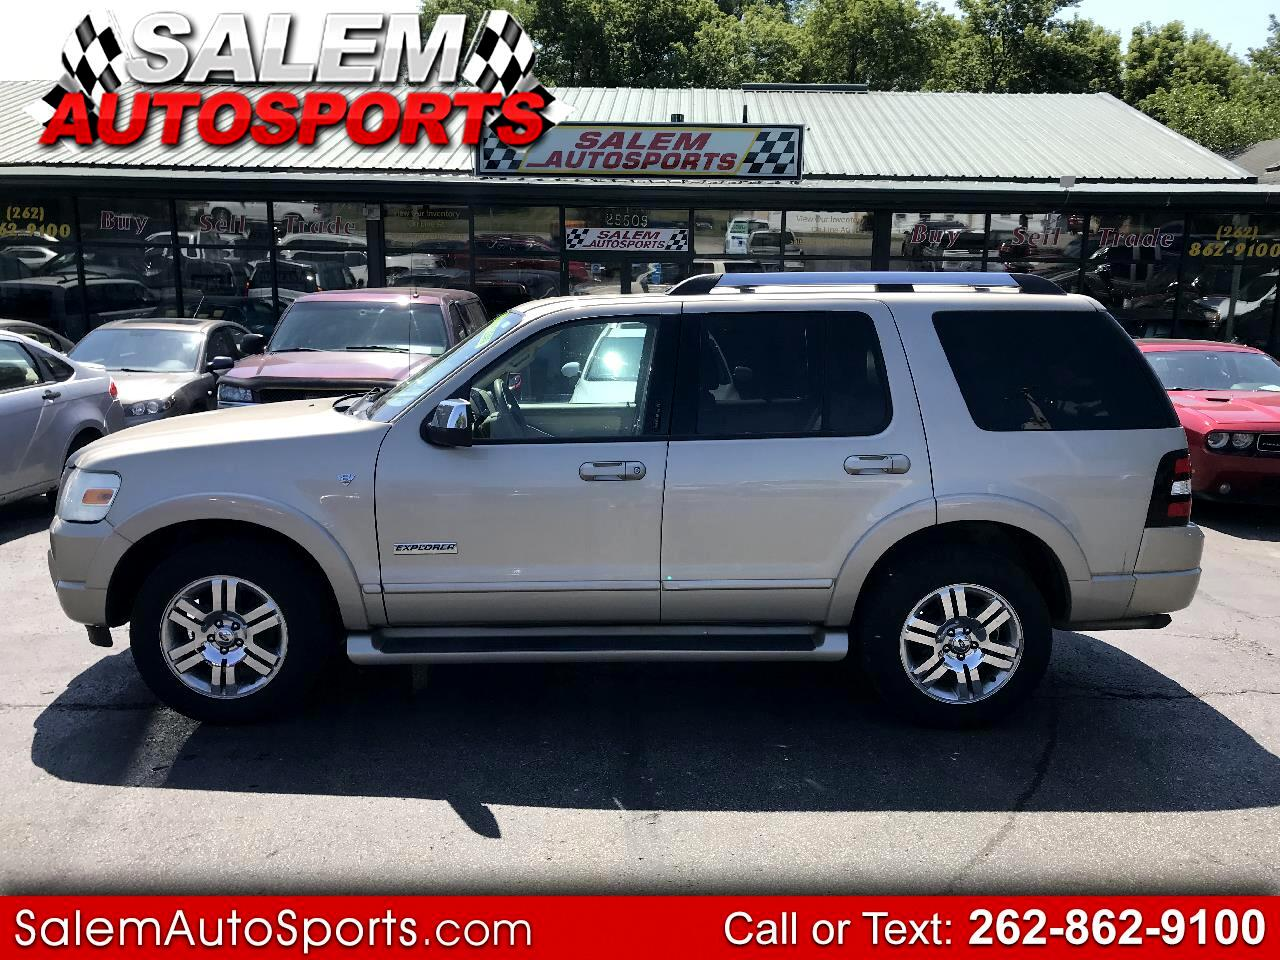 2007 Ford Explorer 4WD 4dr V8 Limited